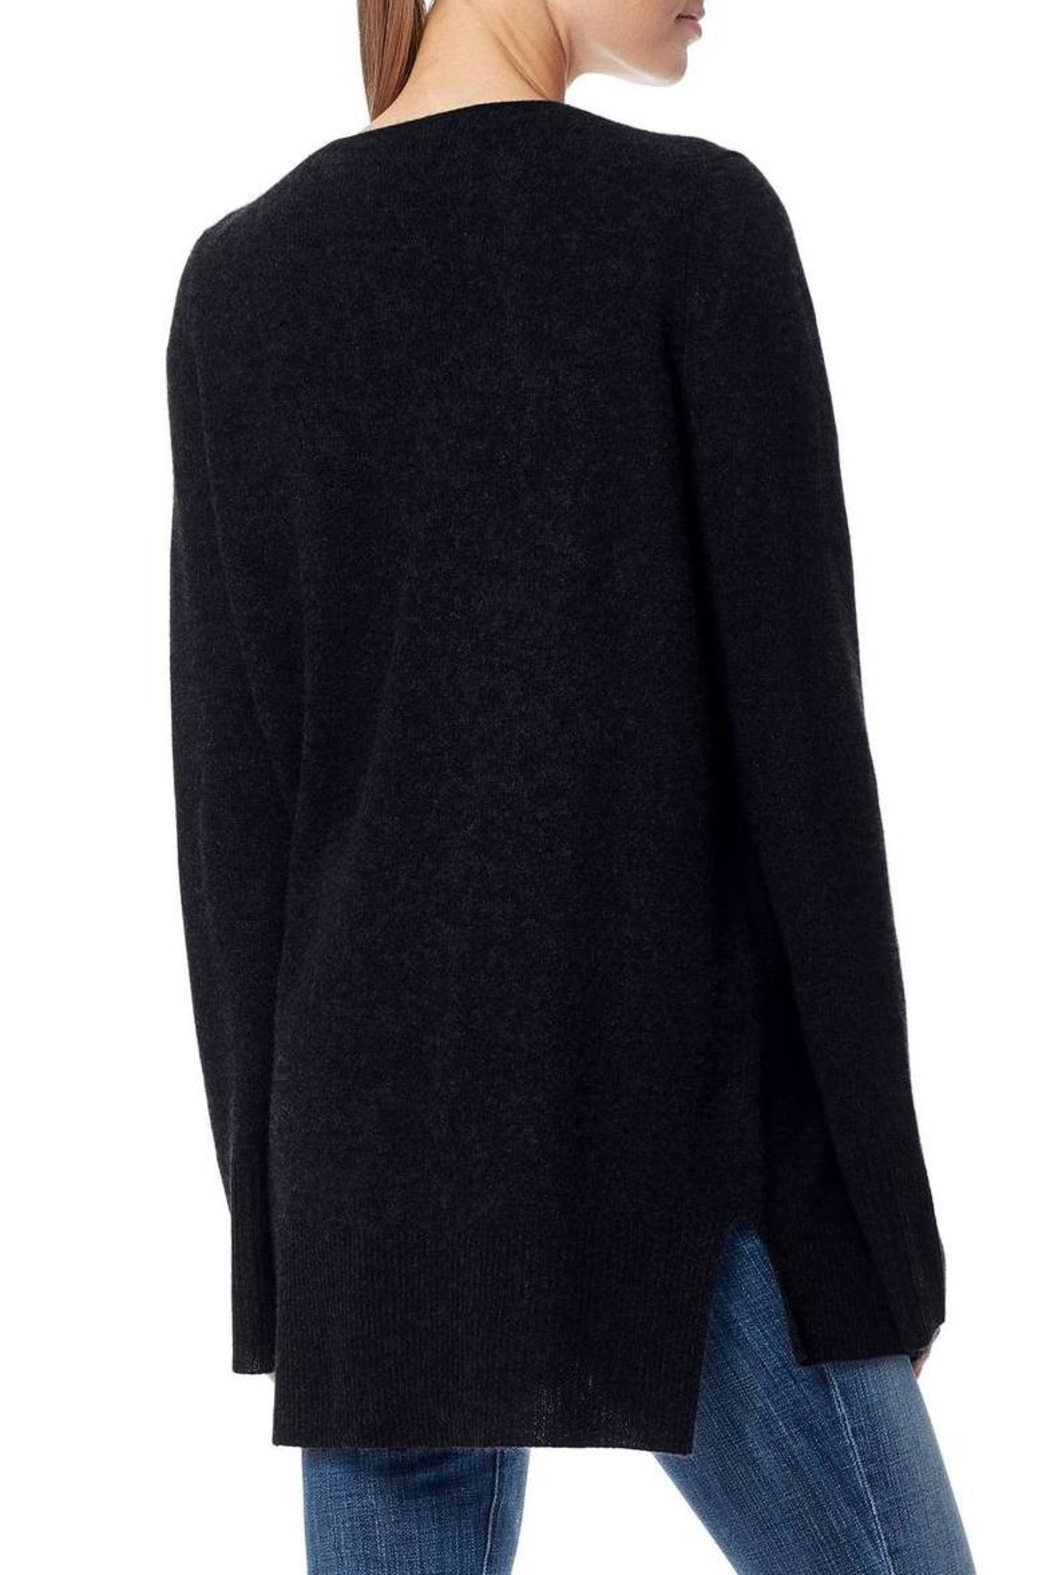 360 Cashmere Cozy Cashmere Cardigan - Front Full Image